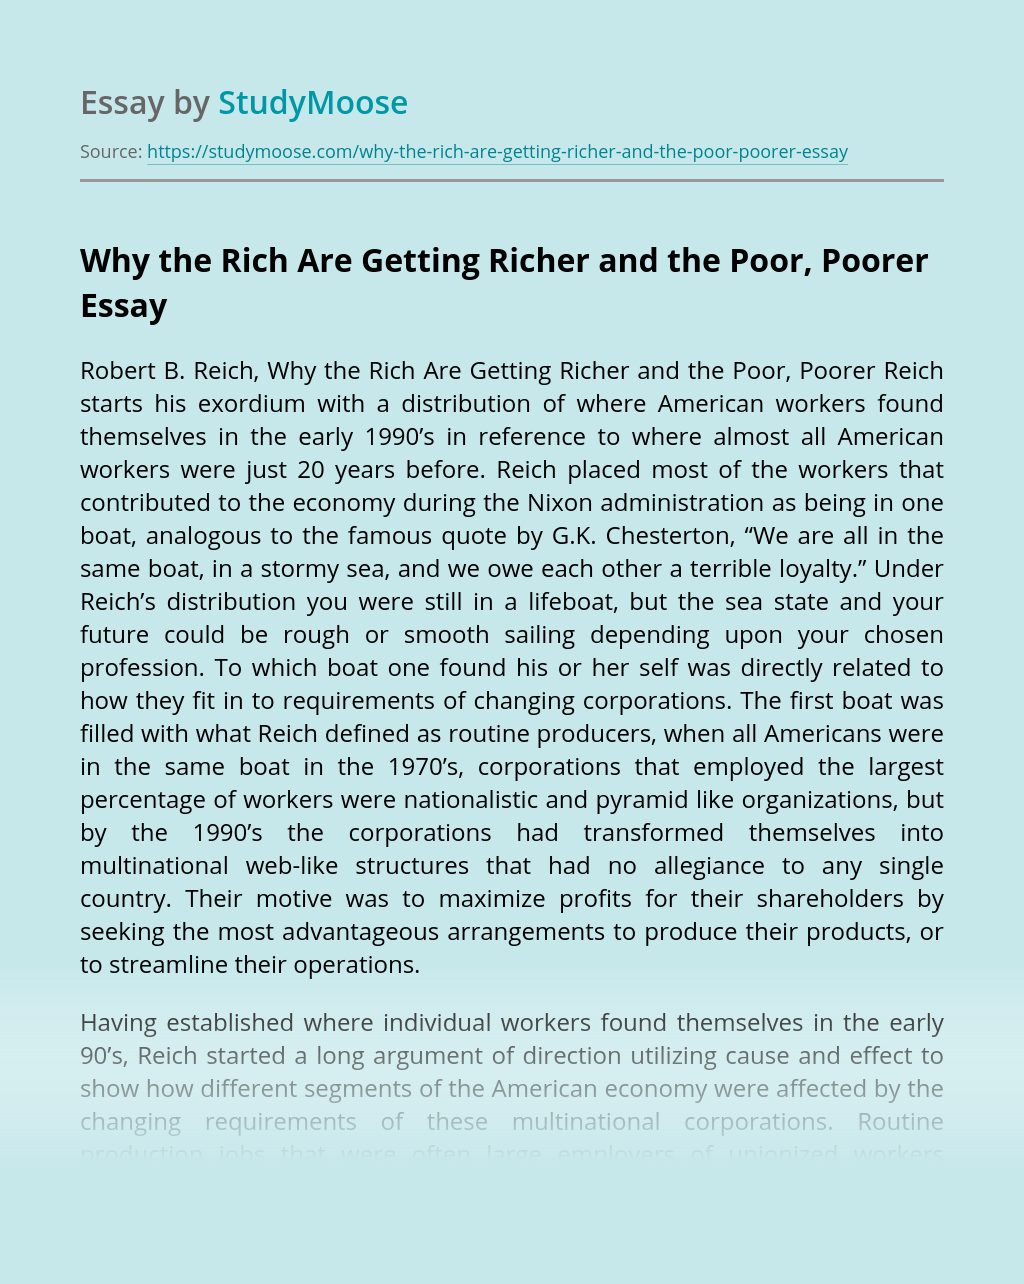 Why the Rich Are Getting Richer and the Poor, Poorer